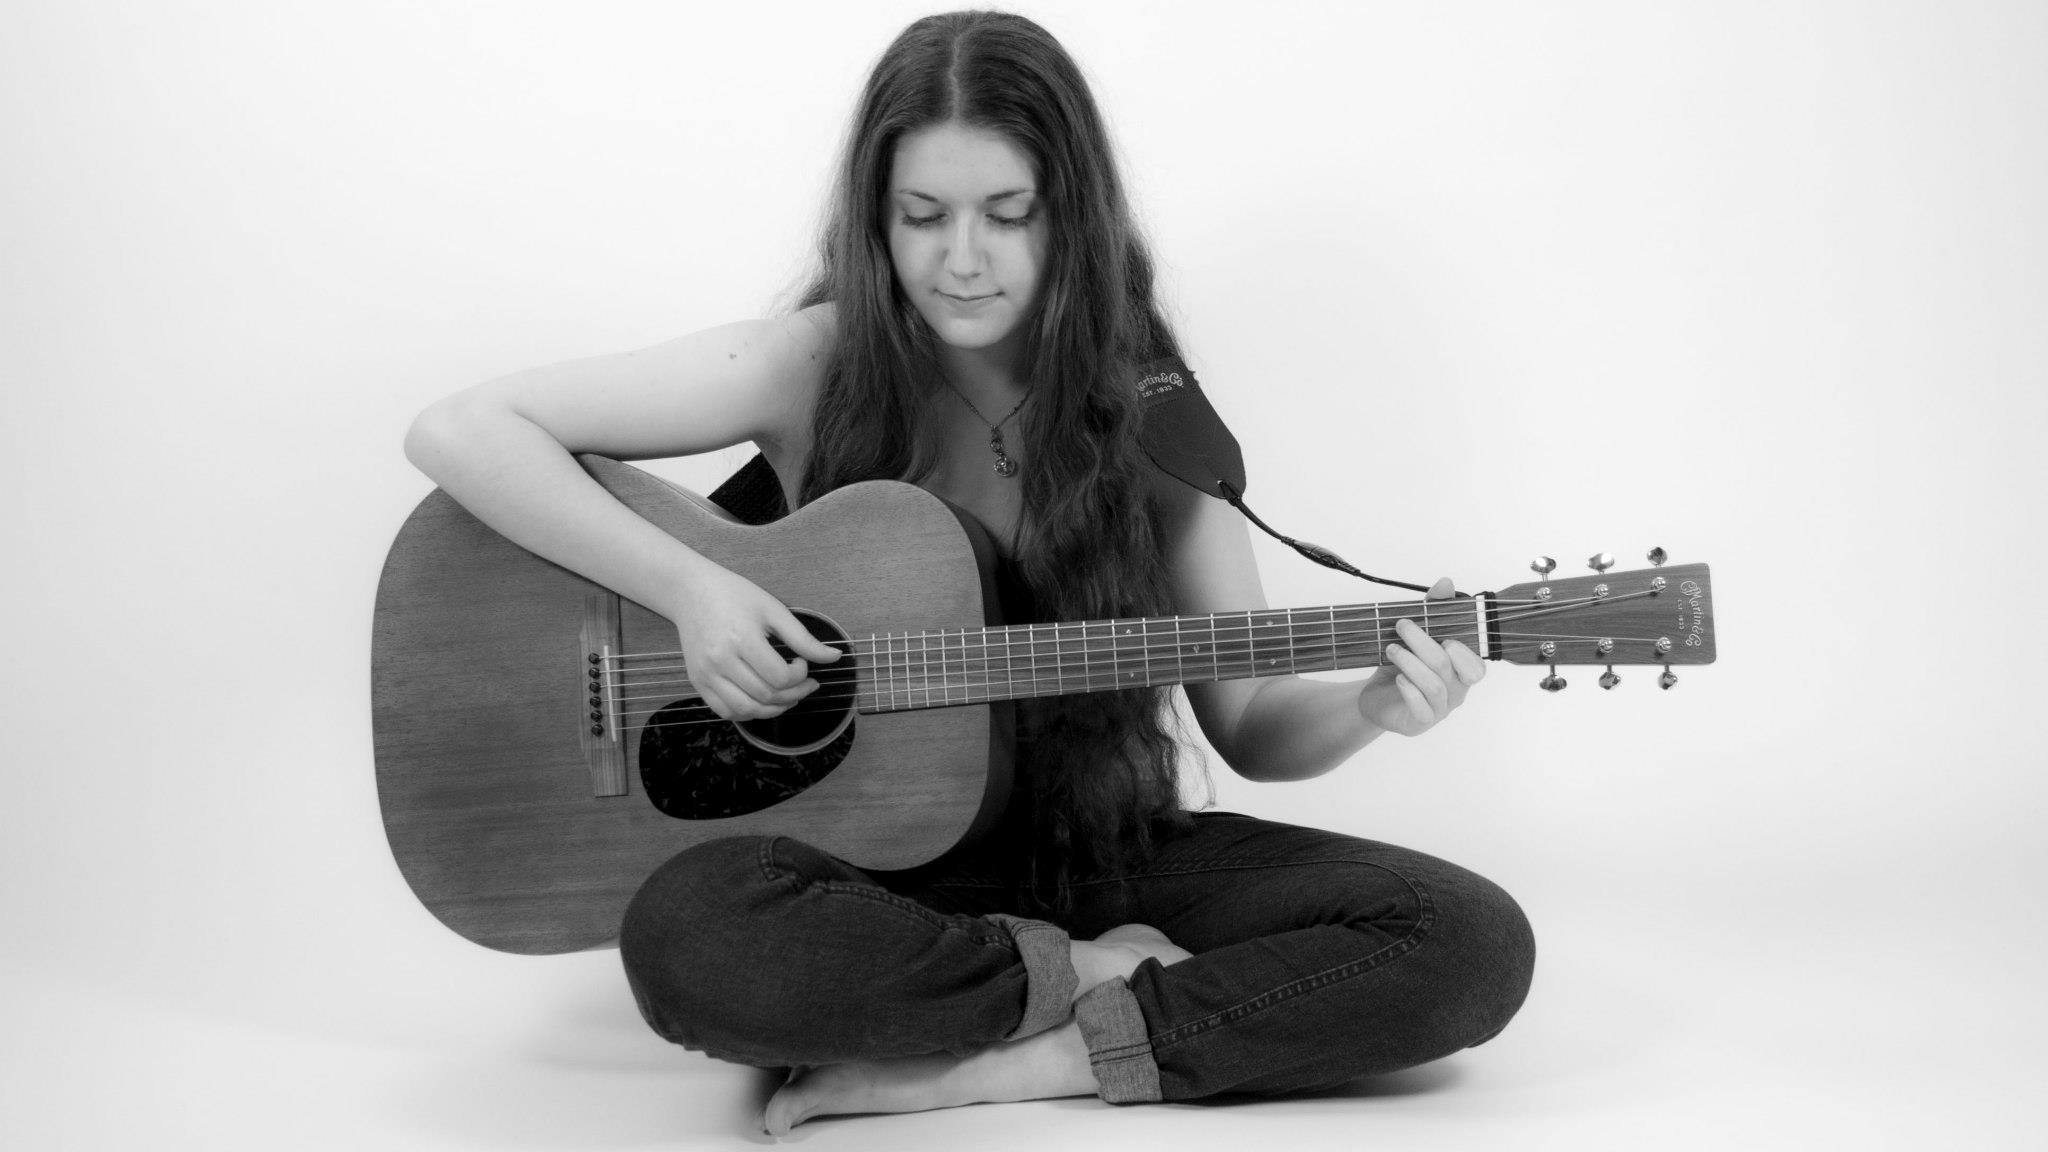 [description] Black and white photo of Lily Mae sitting cross legged and playing guitar